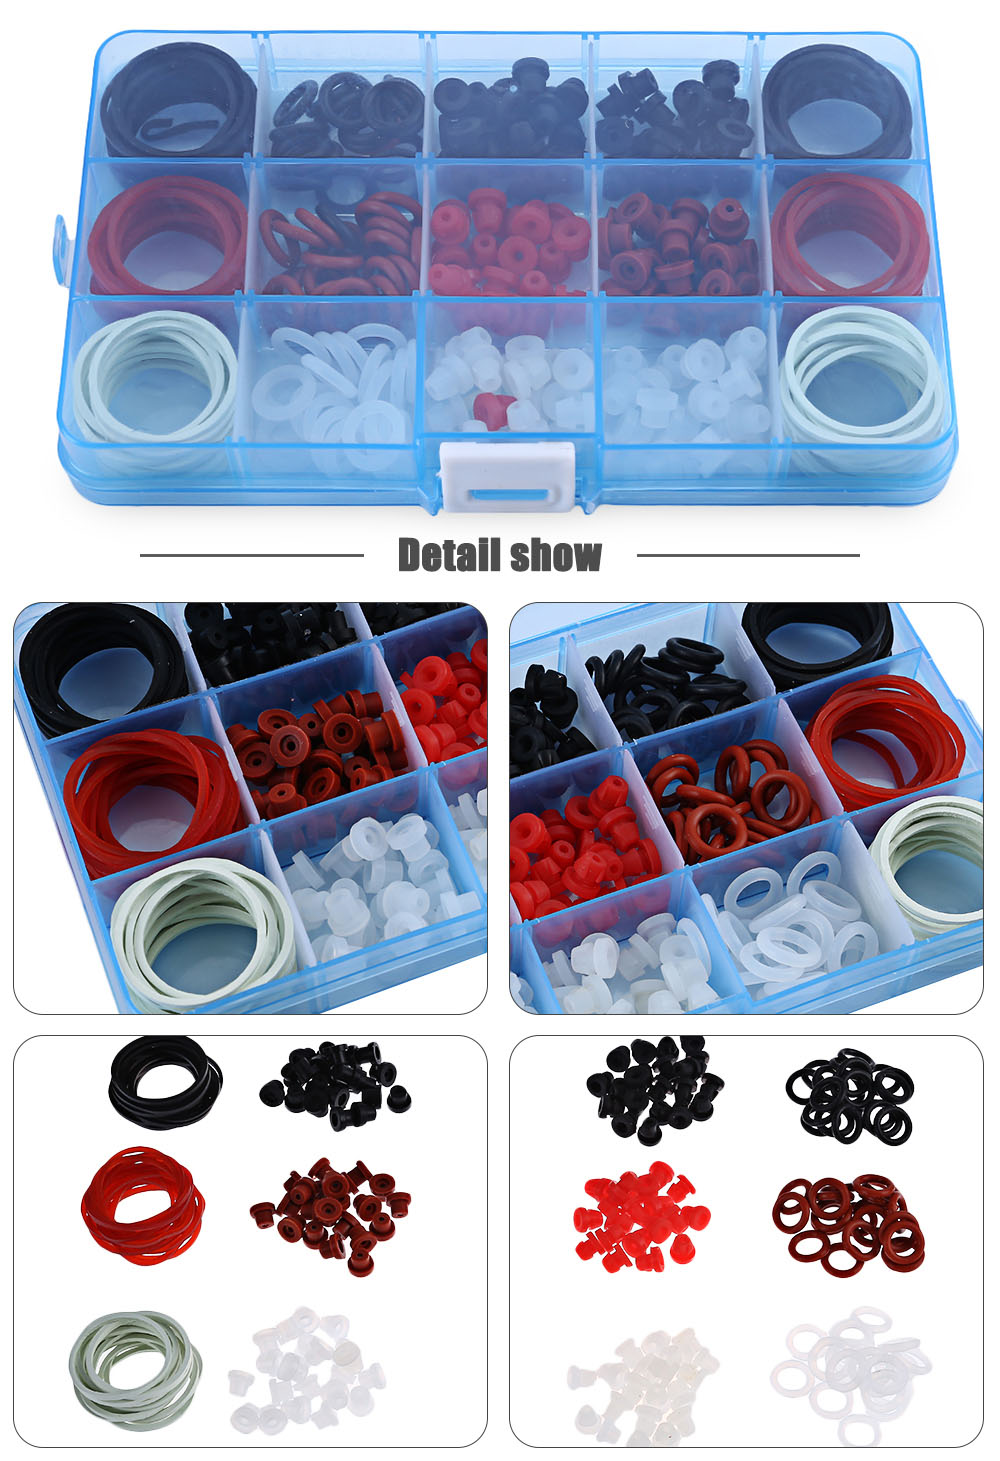 Tattoo Accessories Kit O-rings Pin Cushions Rings Rubber Bands Supplies with Big Storage Box